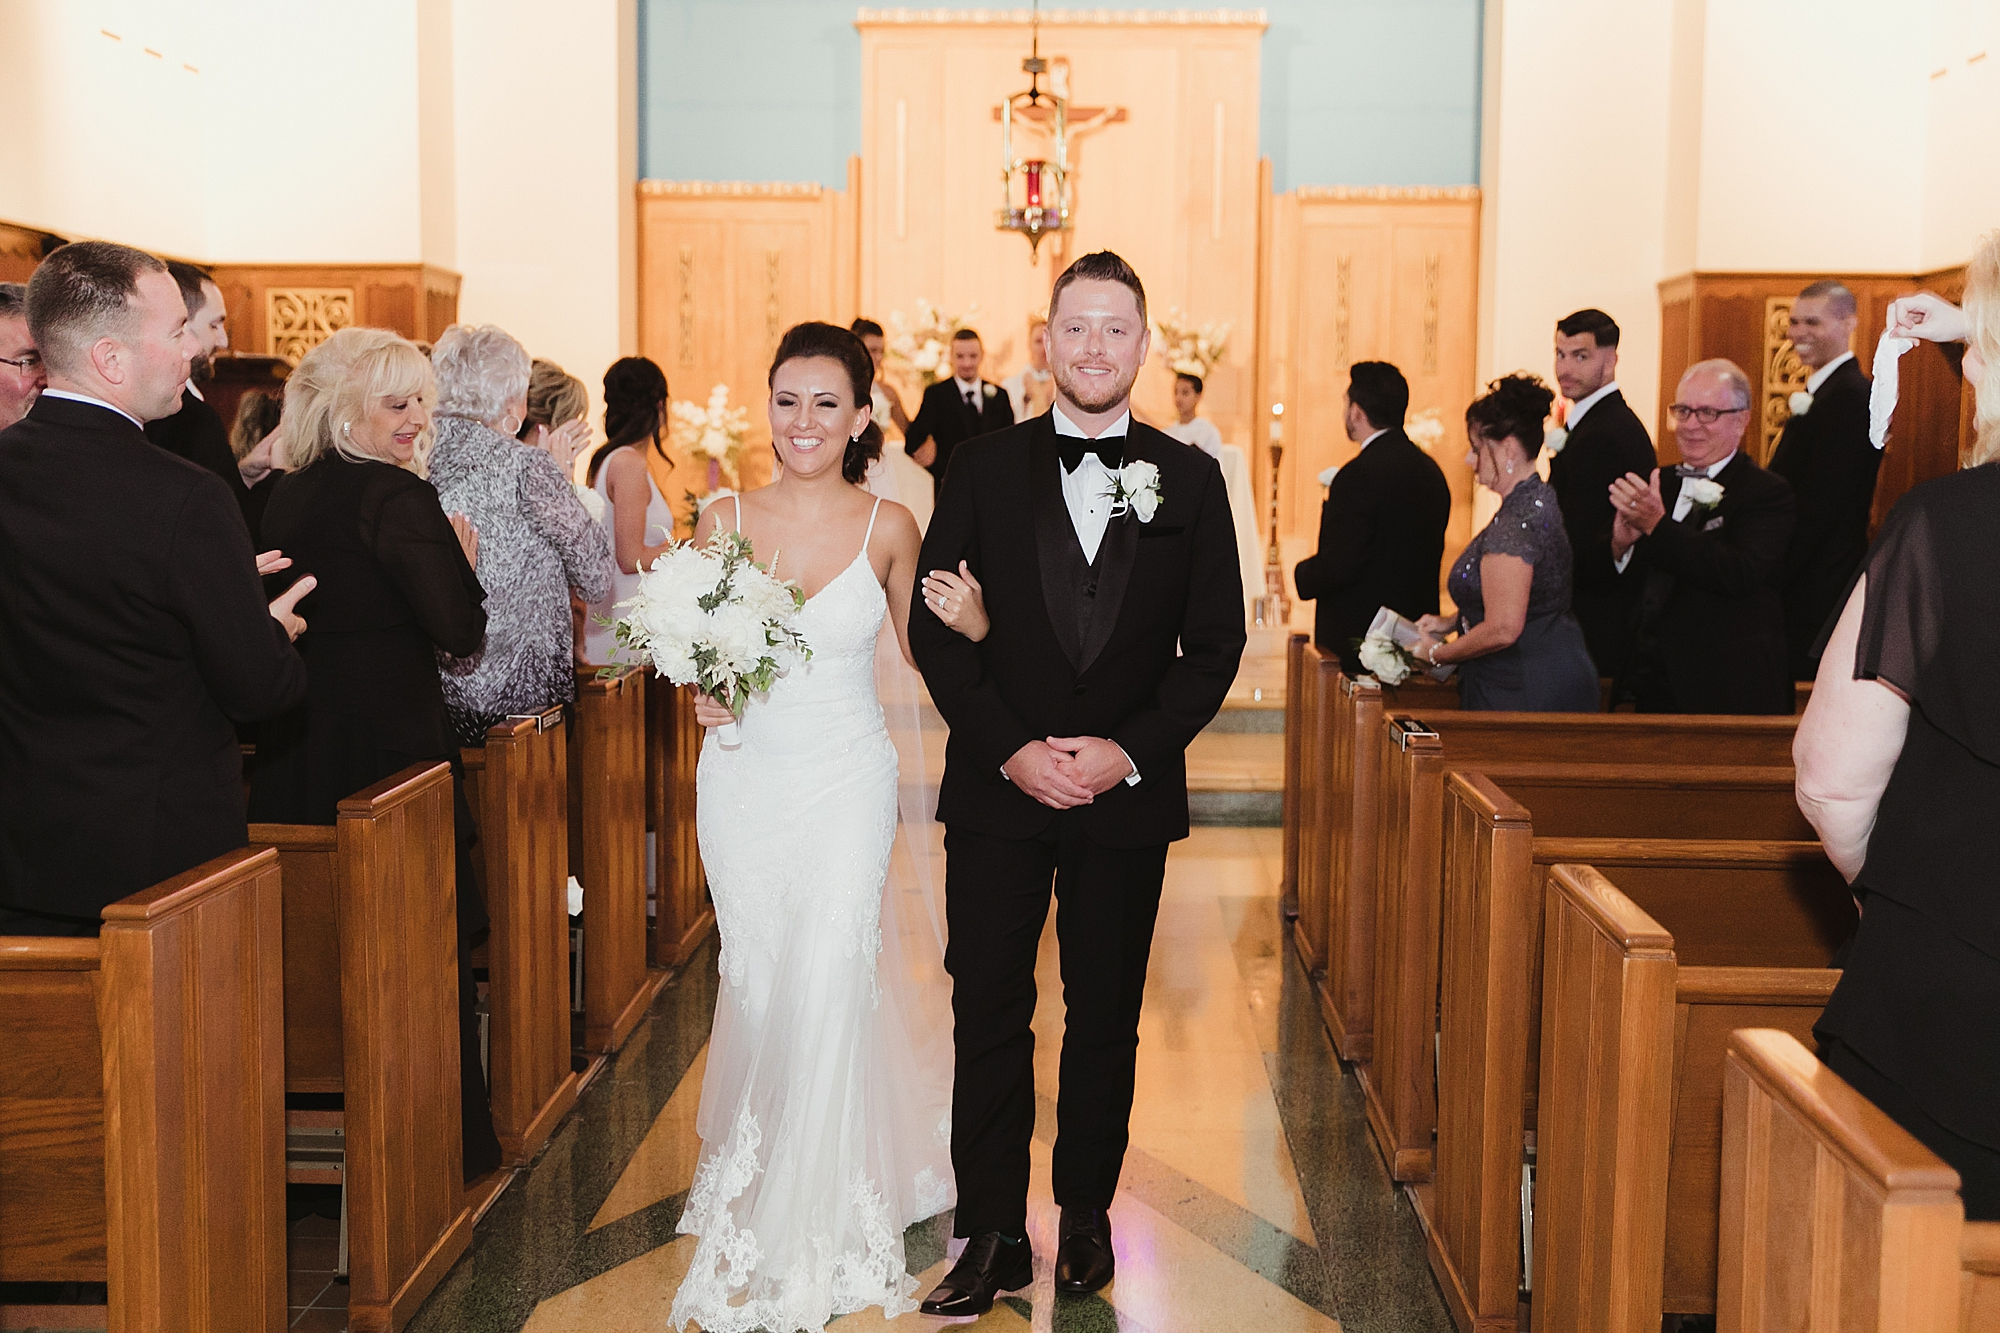 Candid and Stylish South Jersey Wedding Photography by Magdalena Studios 0027